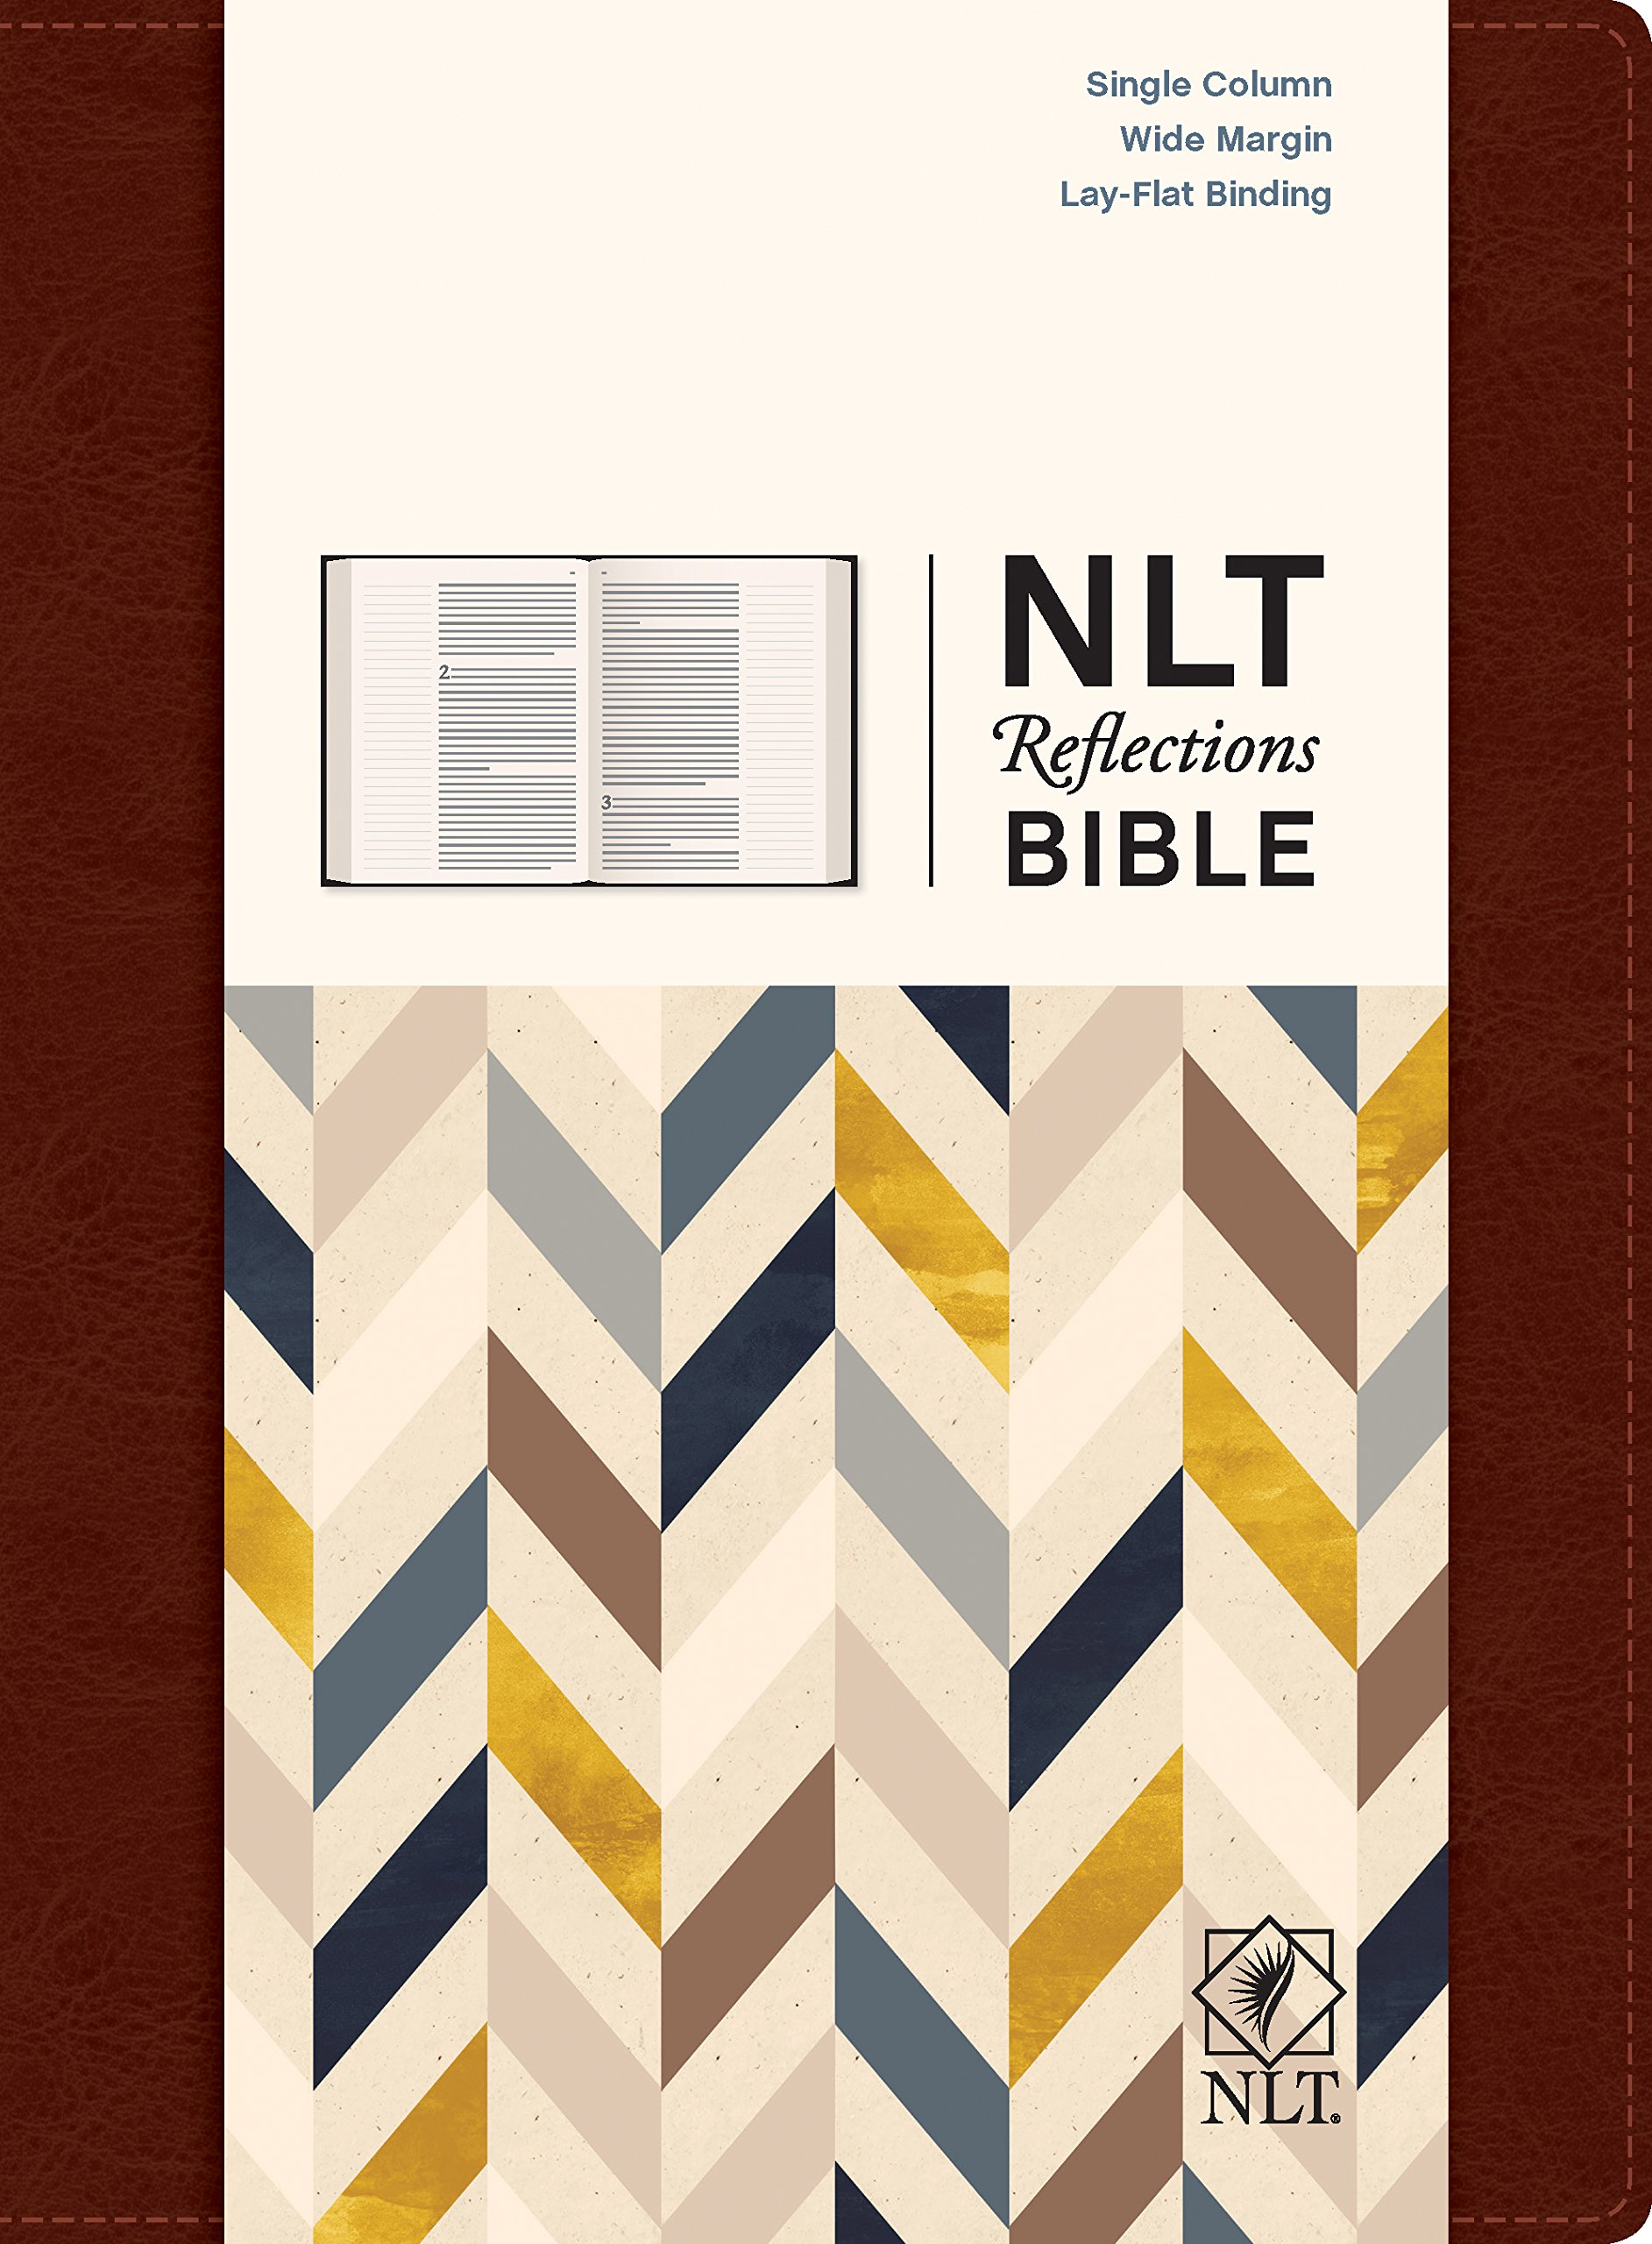 NLT Reflections Bible: The Bible for Journaling pdf epub